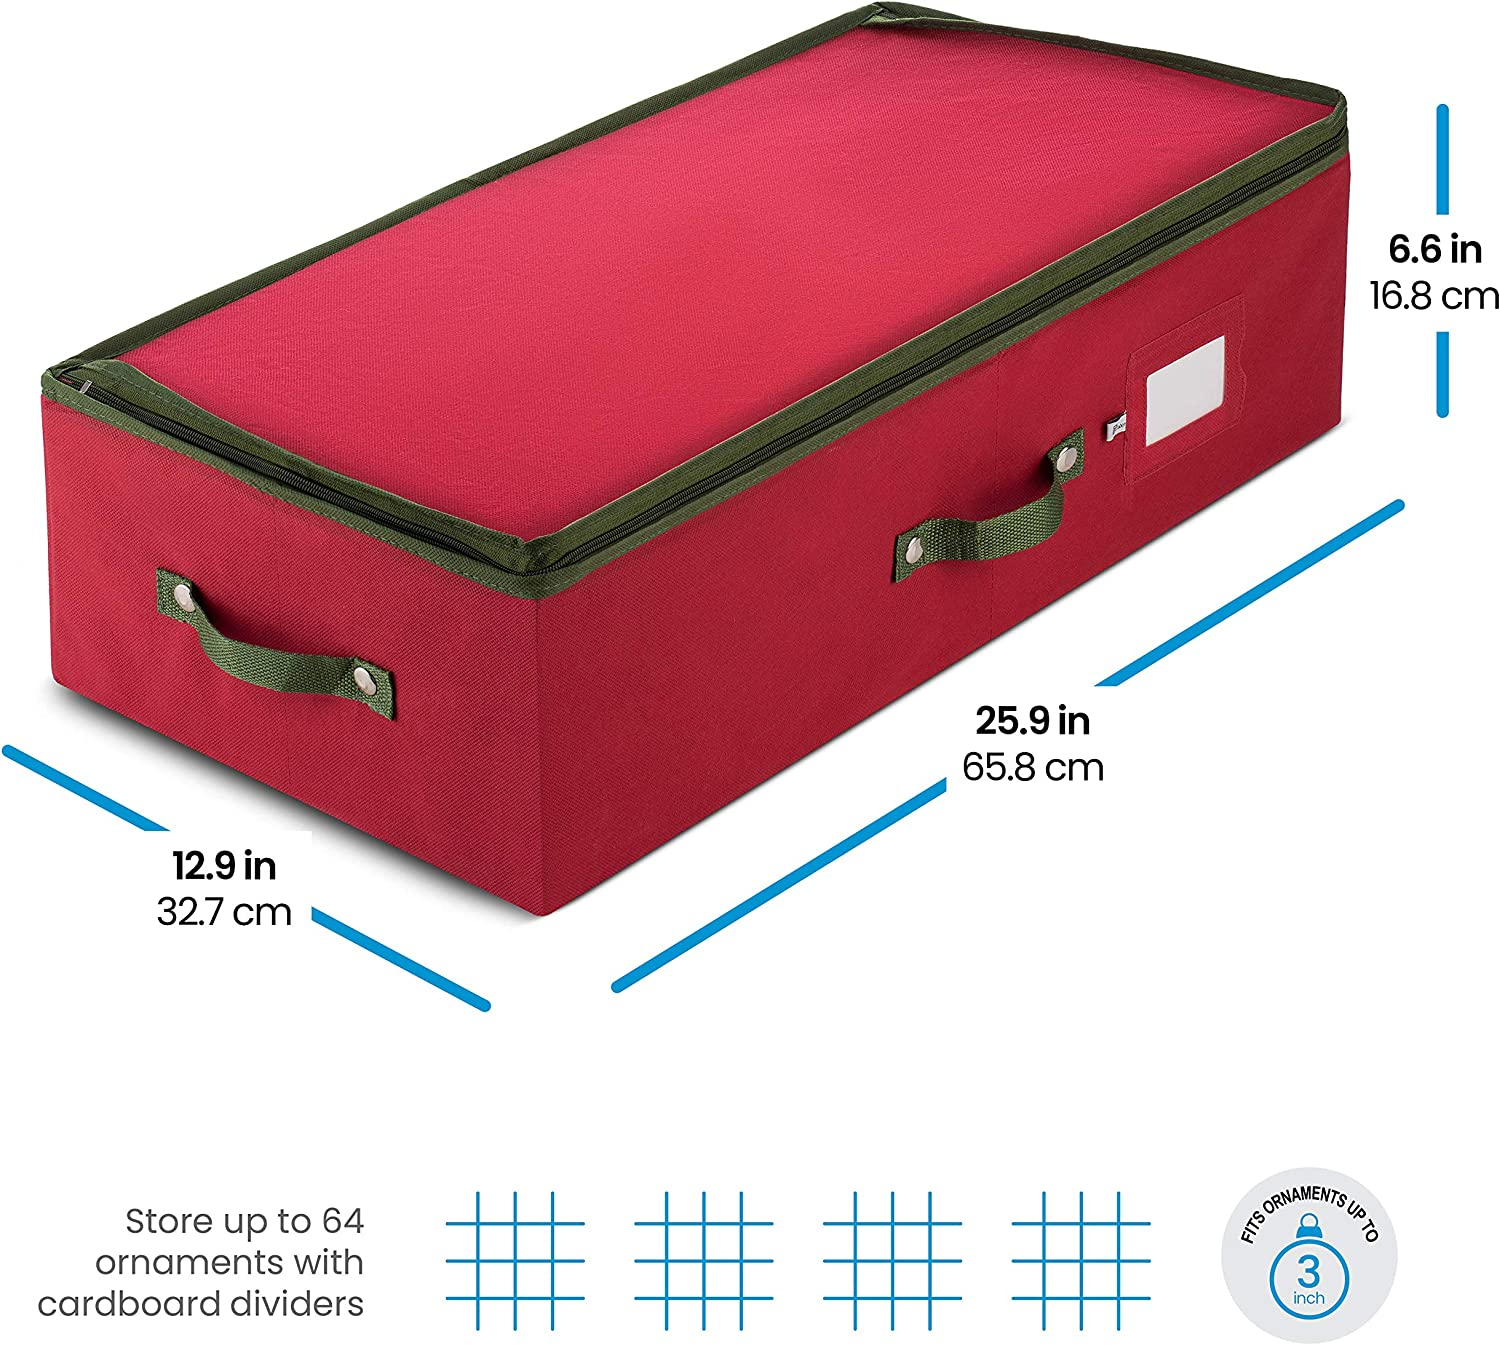 ZOBER Underbed Christmas Ornament Storage Box Zippered Closure Stores up to 64 of The 3-inch Standard Christmas Ornaments and Xmas Holiday Accessories Storage Container with Dividers /& Two Handles